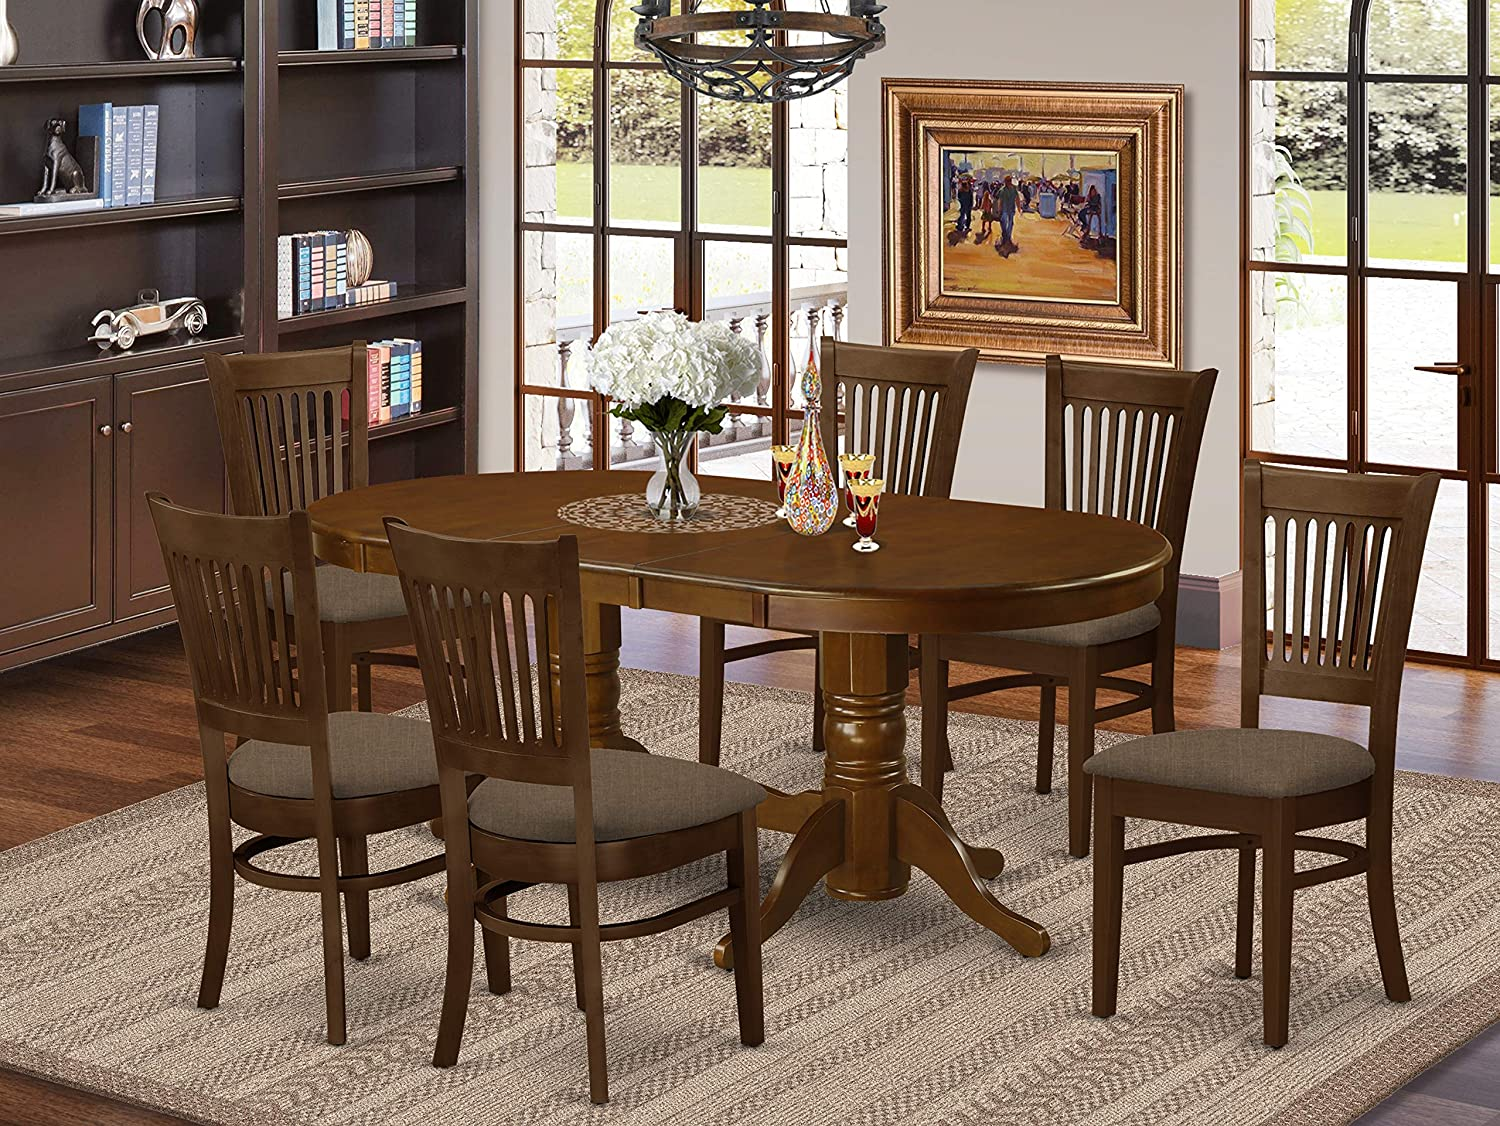 Amazon Com 7 Pc Dining Room Set Table With Leaf And 6 Dining Chairs Furniture Decor